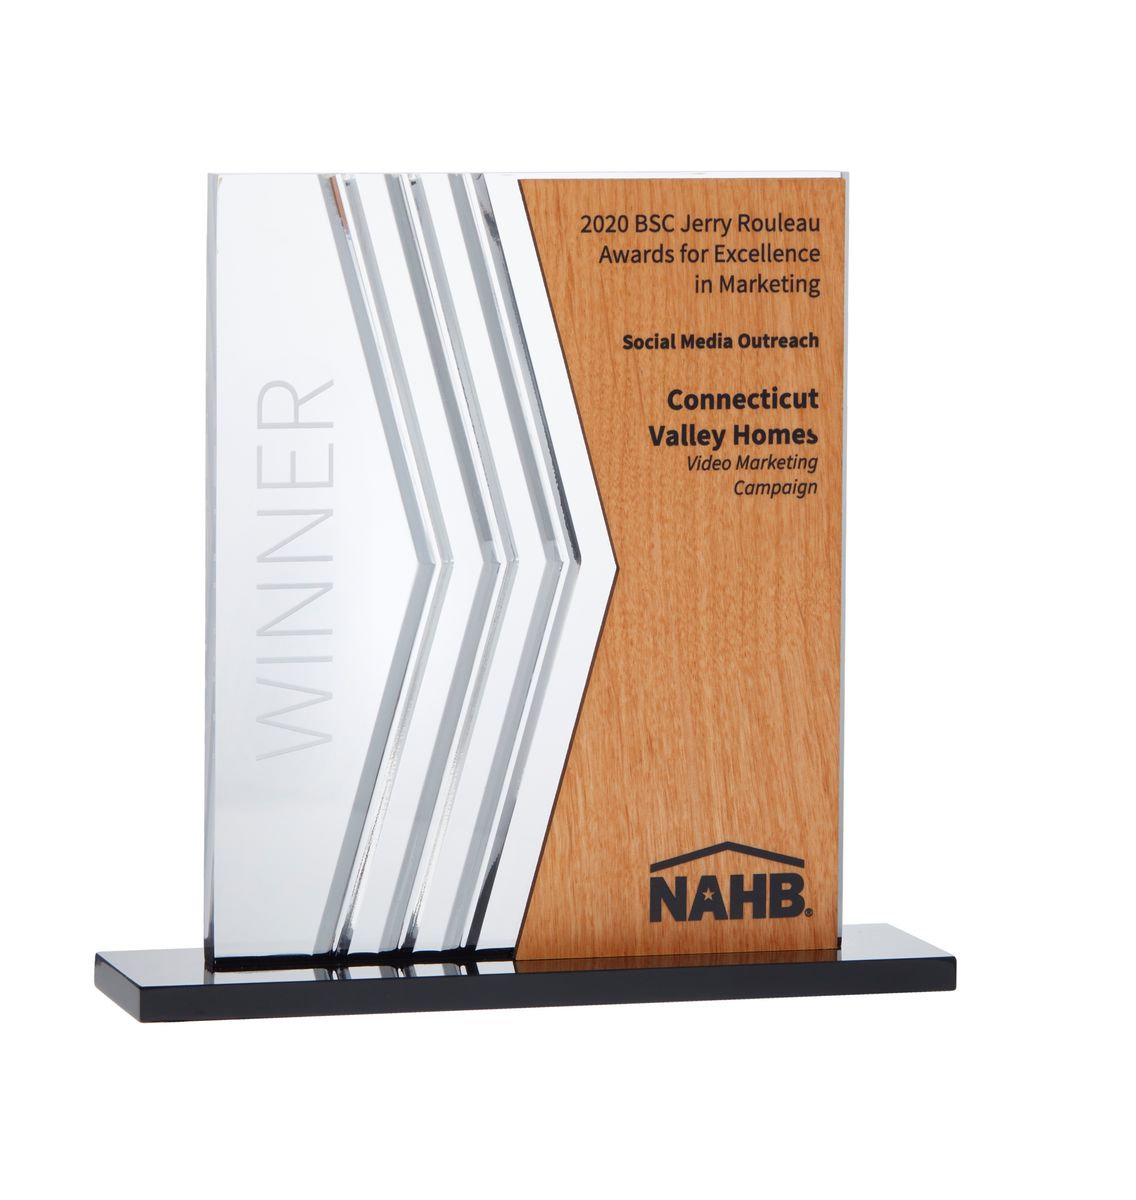 National Association of Home Builders Building Systems Council Jerry Rouleau Award for Marketing